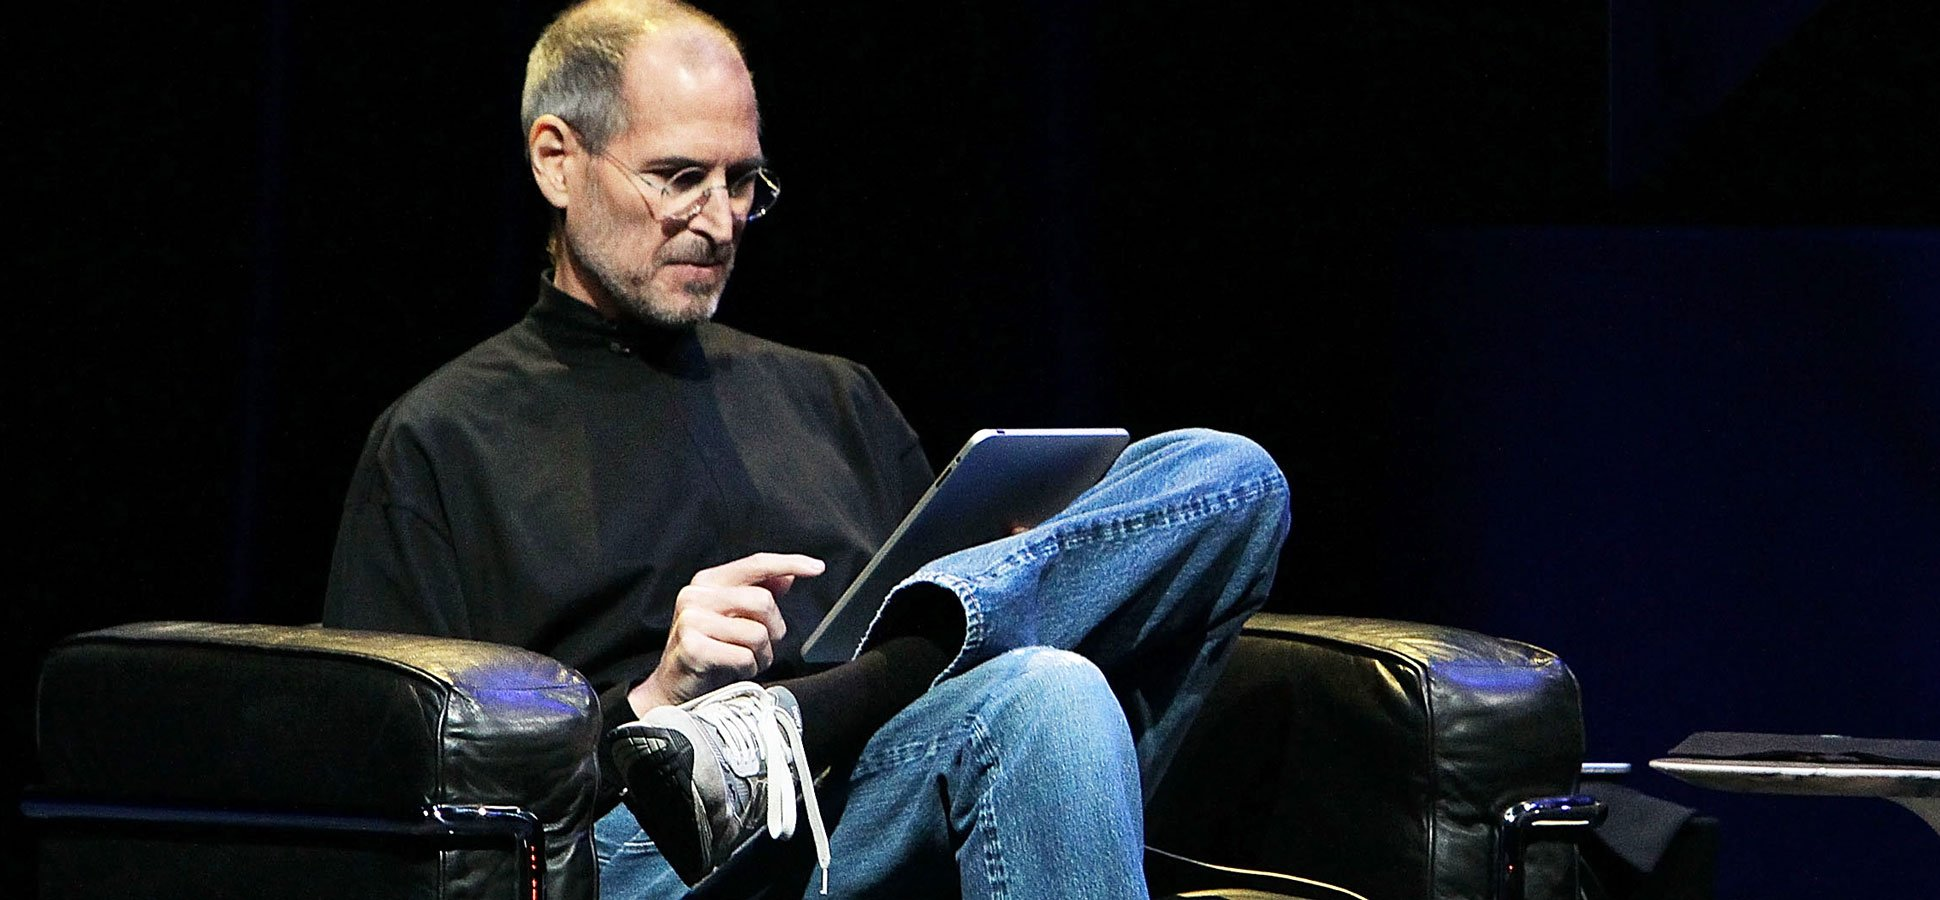 5 Books Steve Jobs Thought Every Leader Should Read